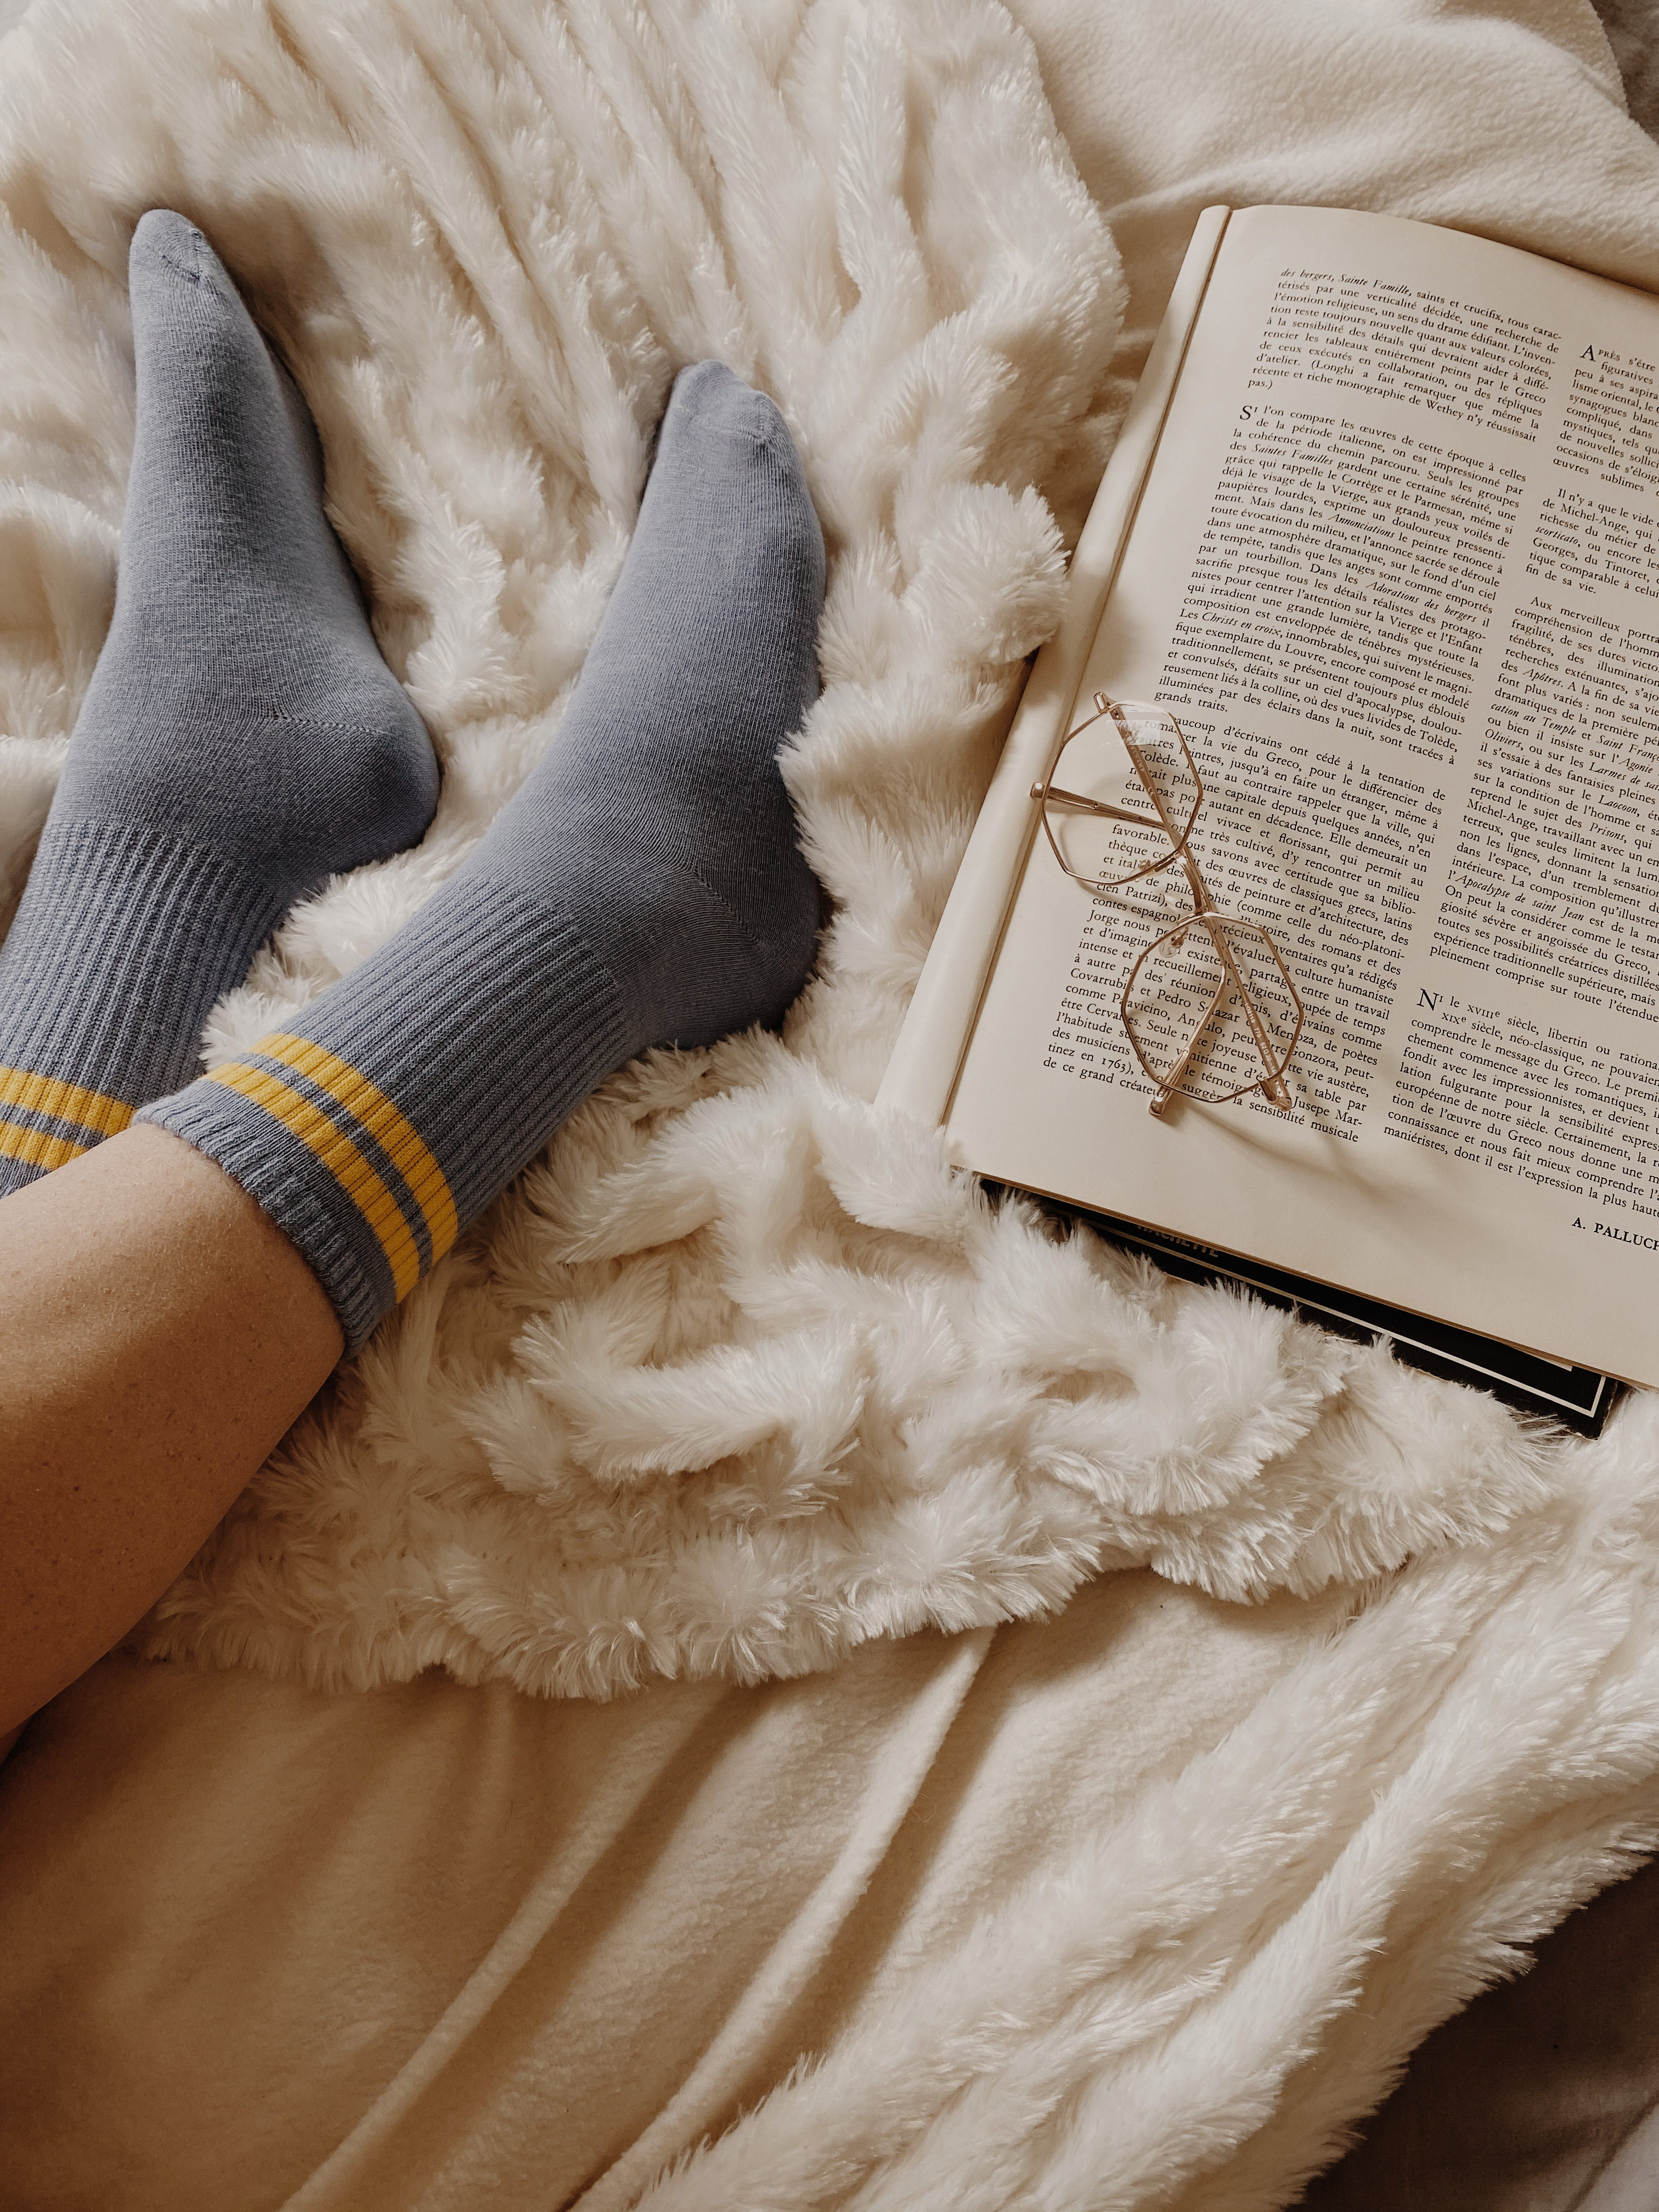 Chaussettes hiver -2.jpg